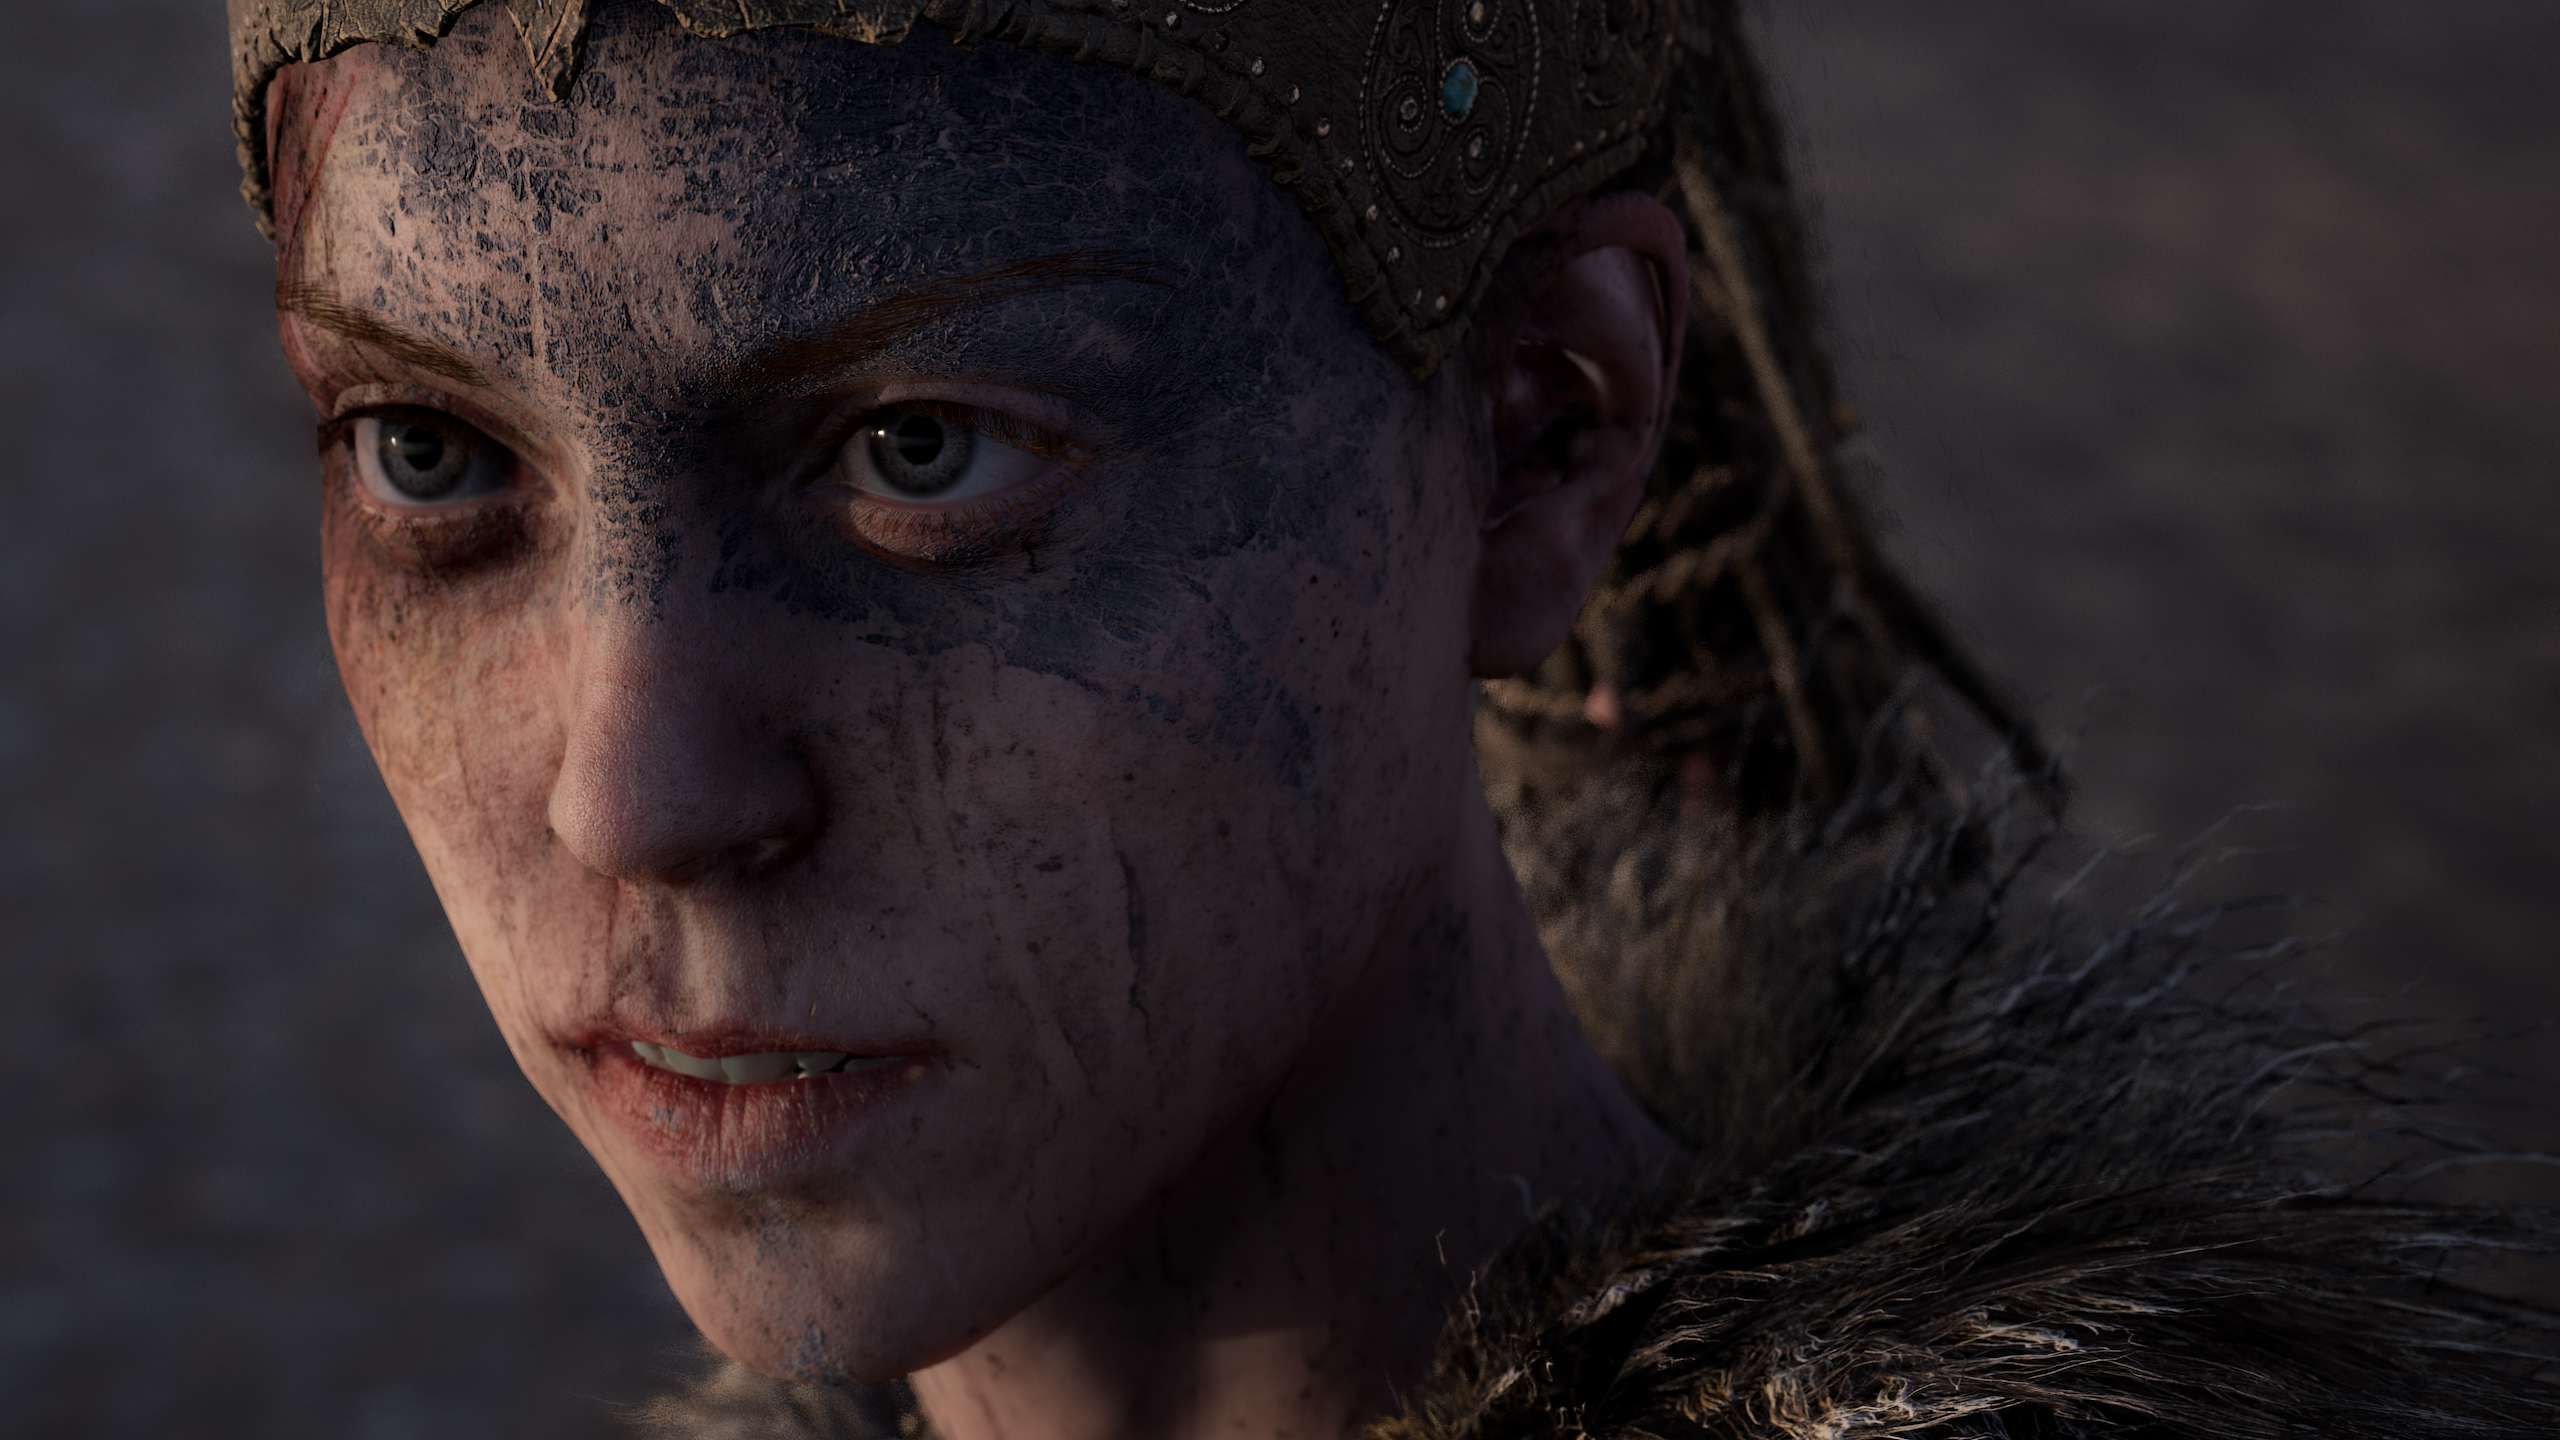 Closeup of Senua's face